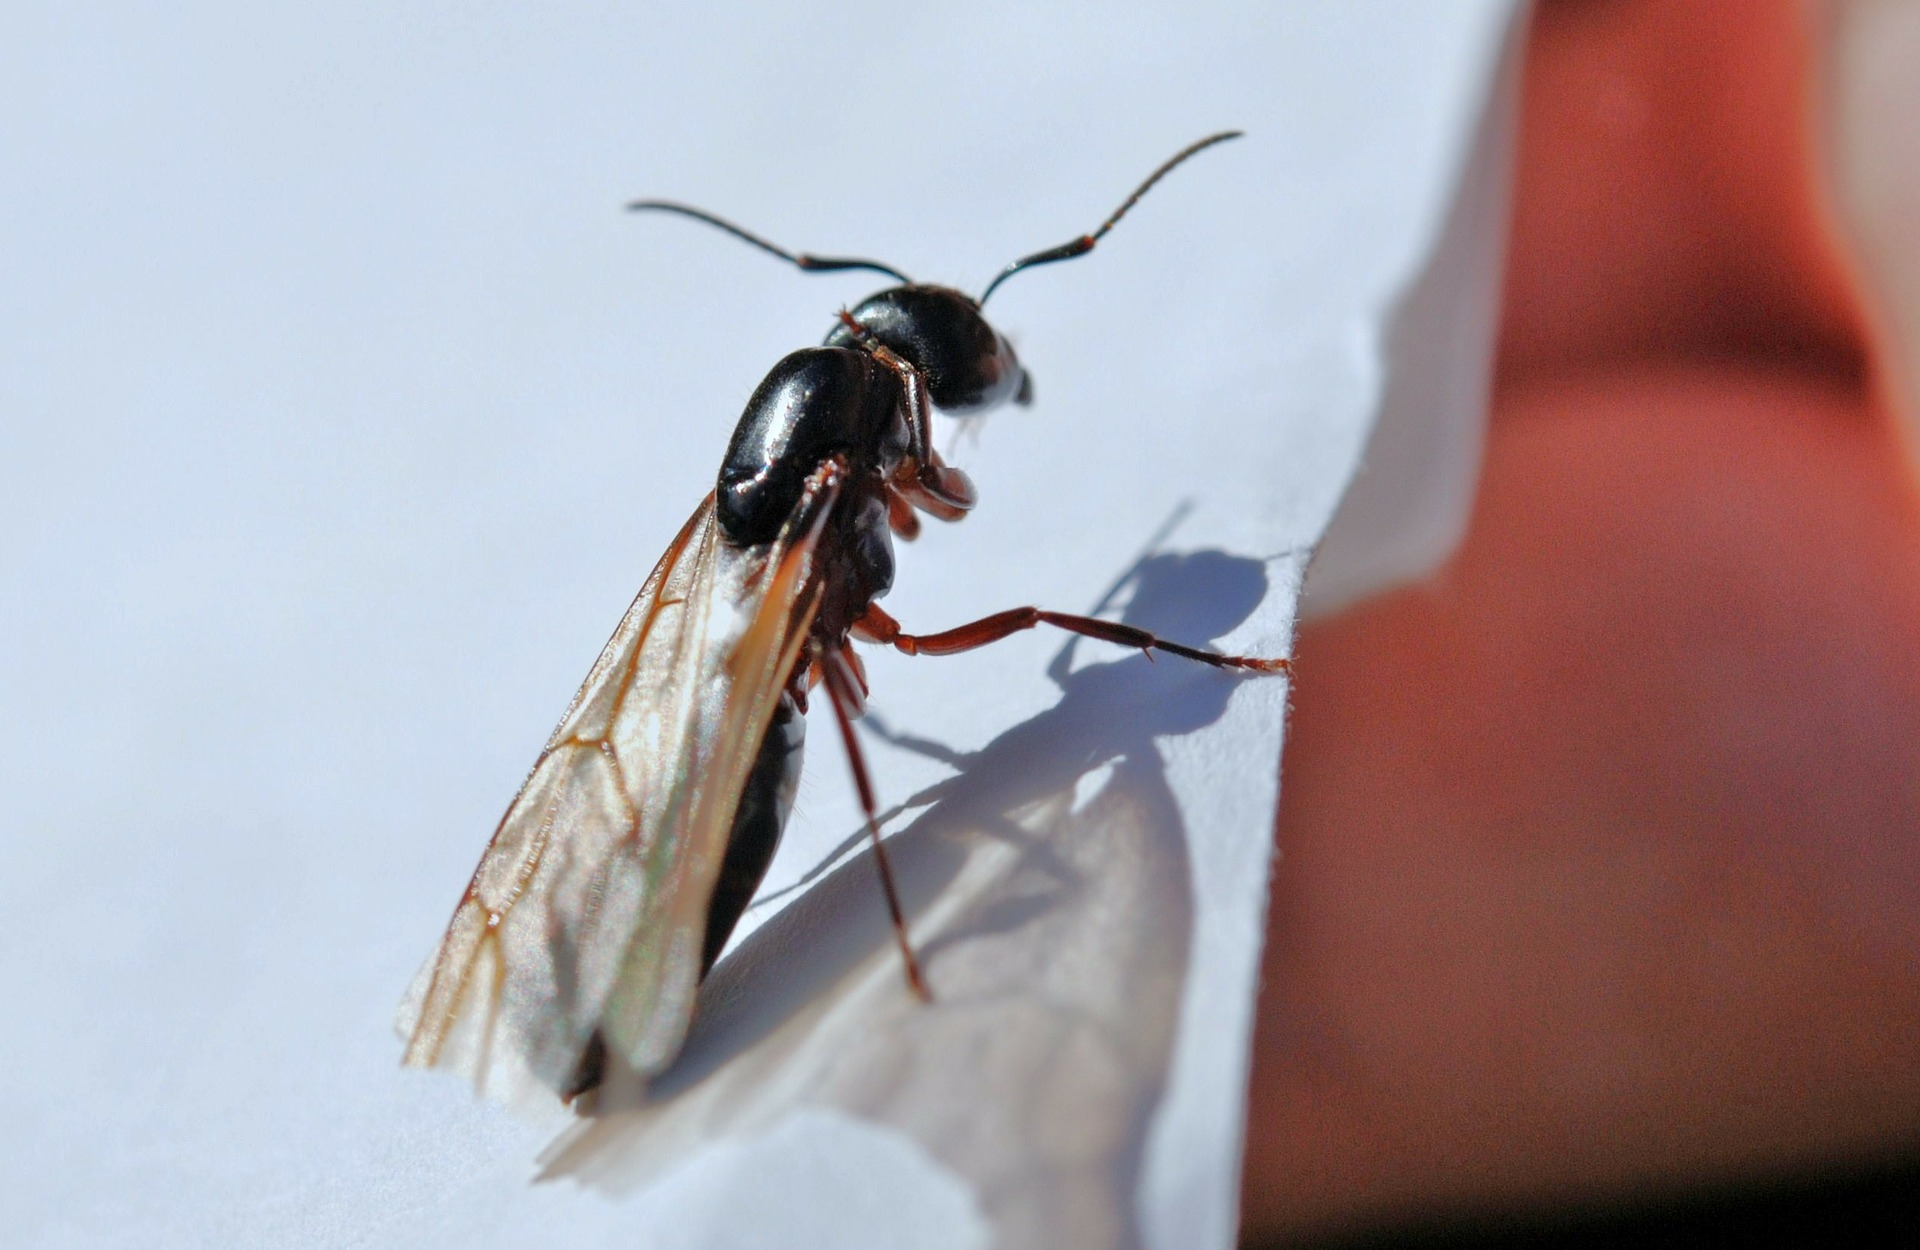 Tampa Termite Control Identifying The Difference Between Termites And Flying Ants